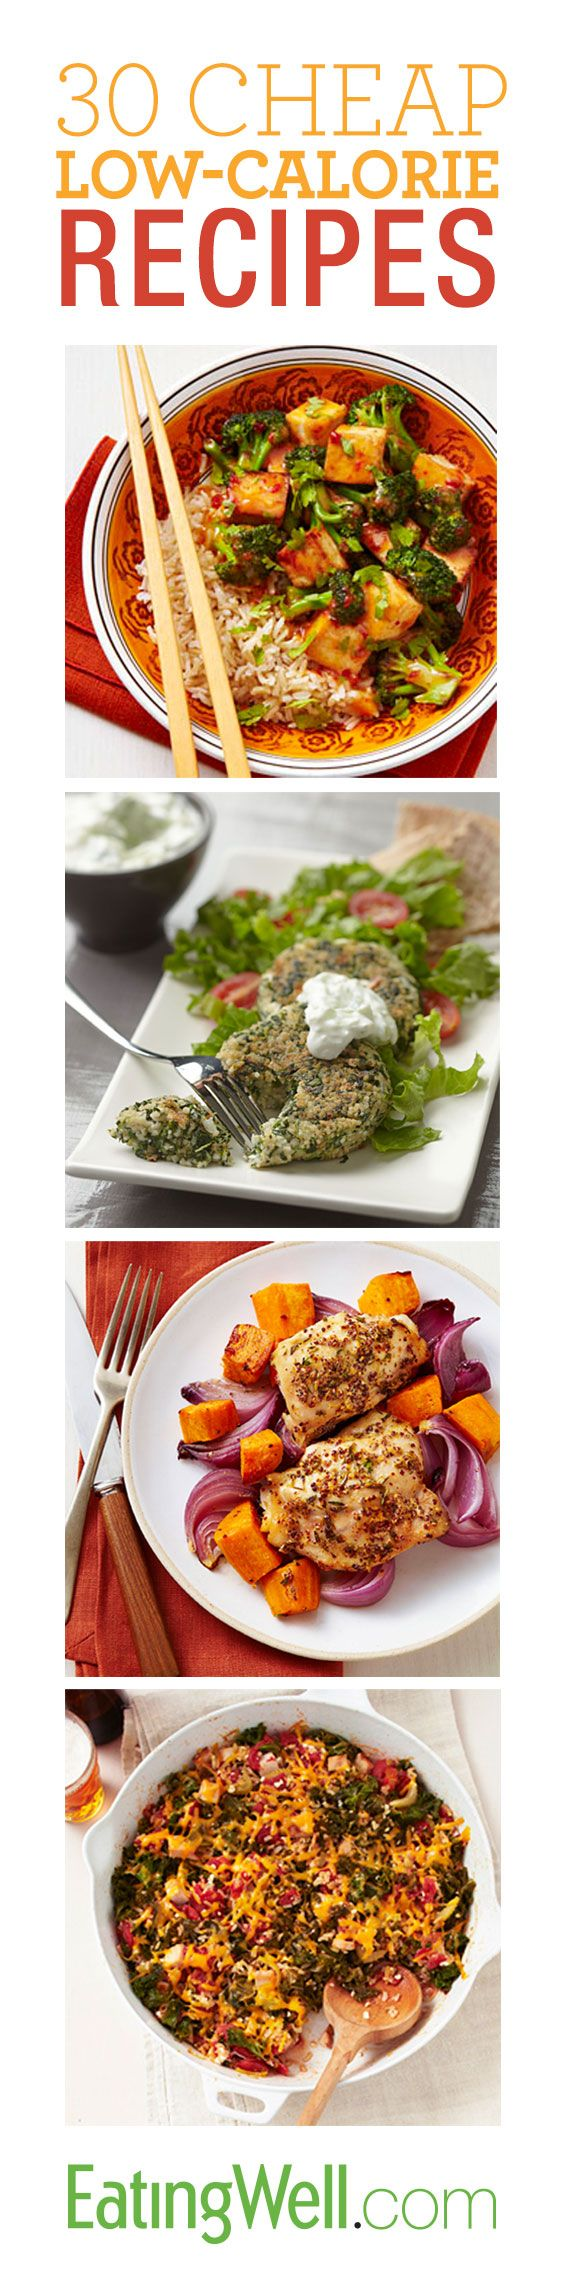 Save money and slim down with these cheap diet recipes.